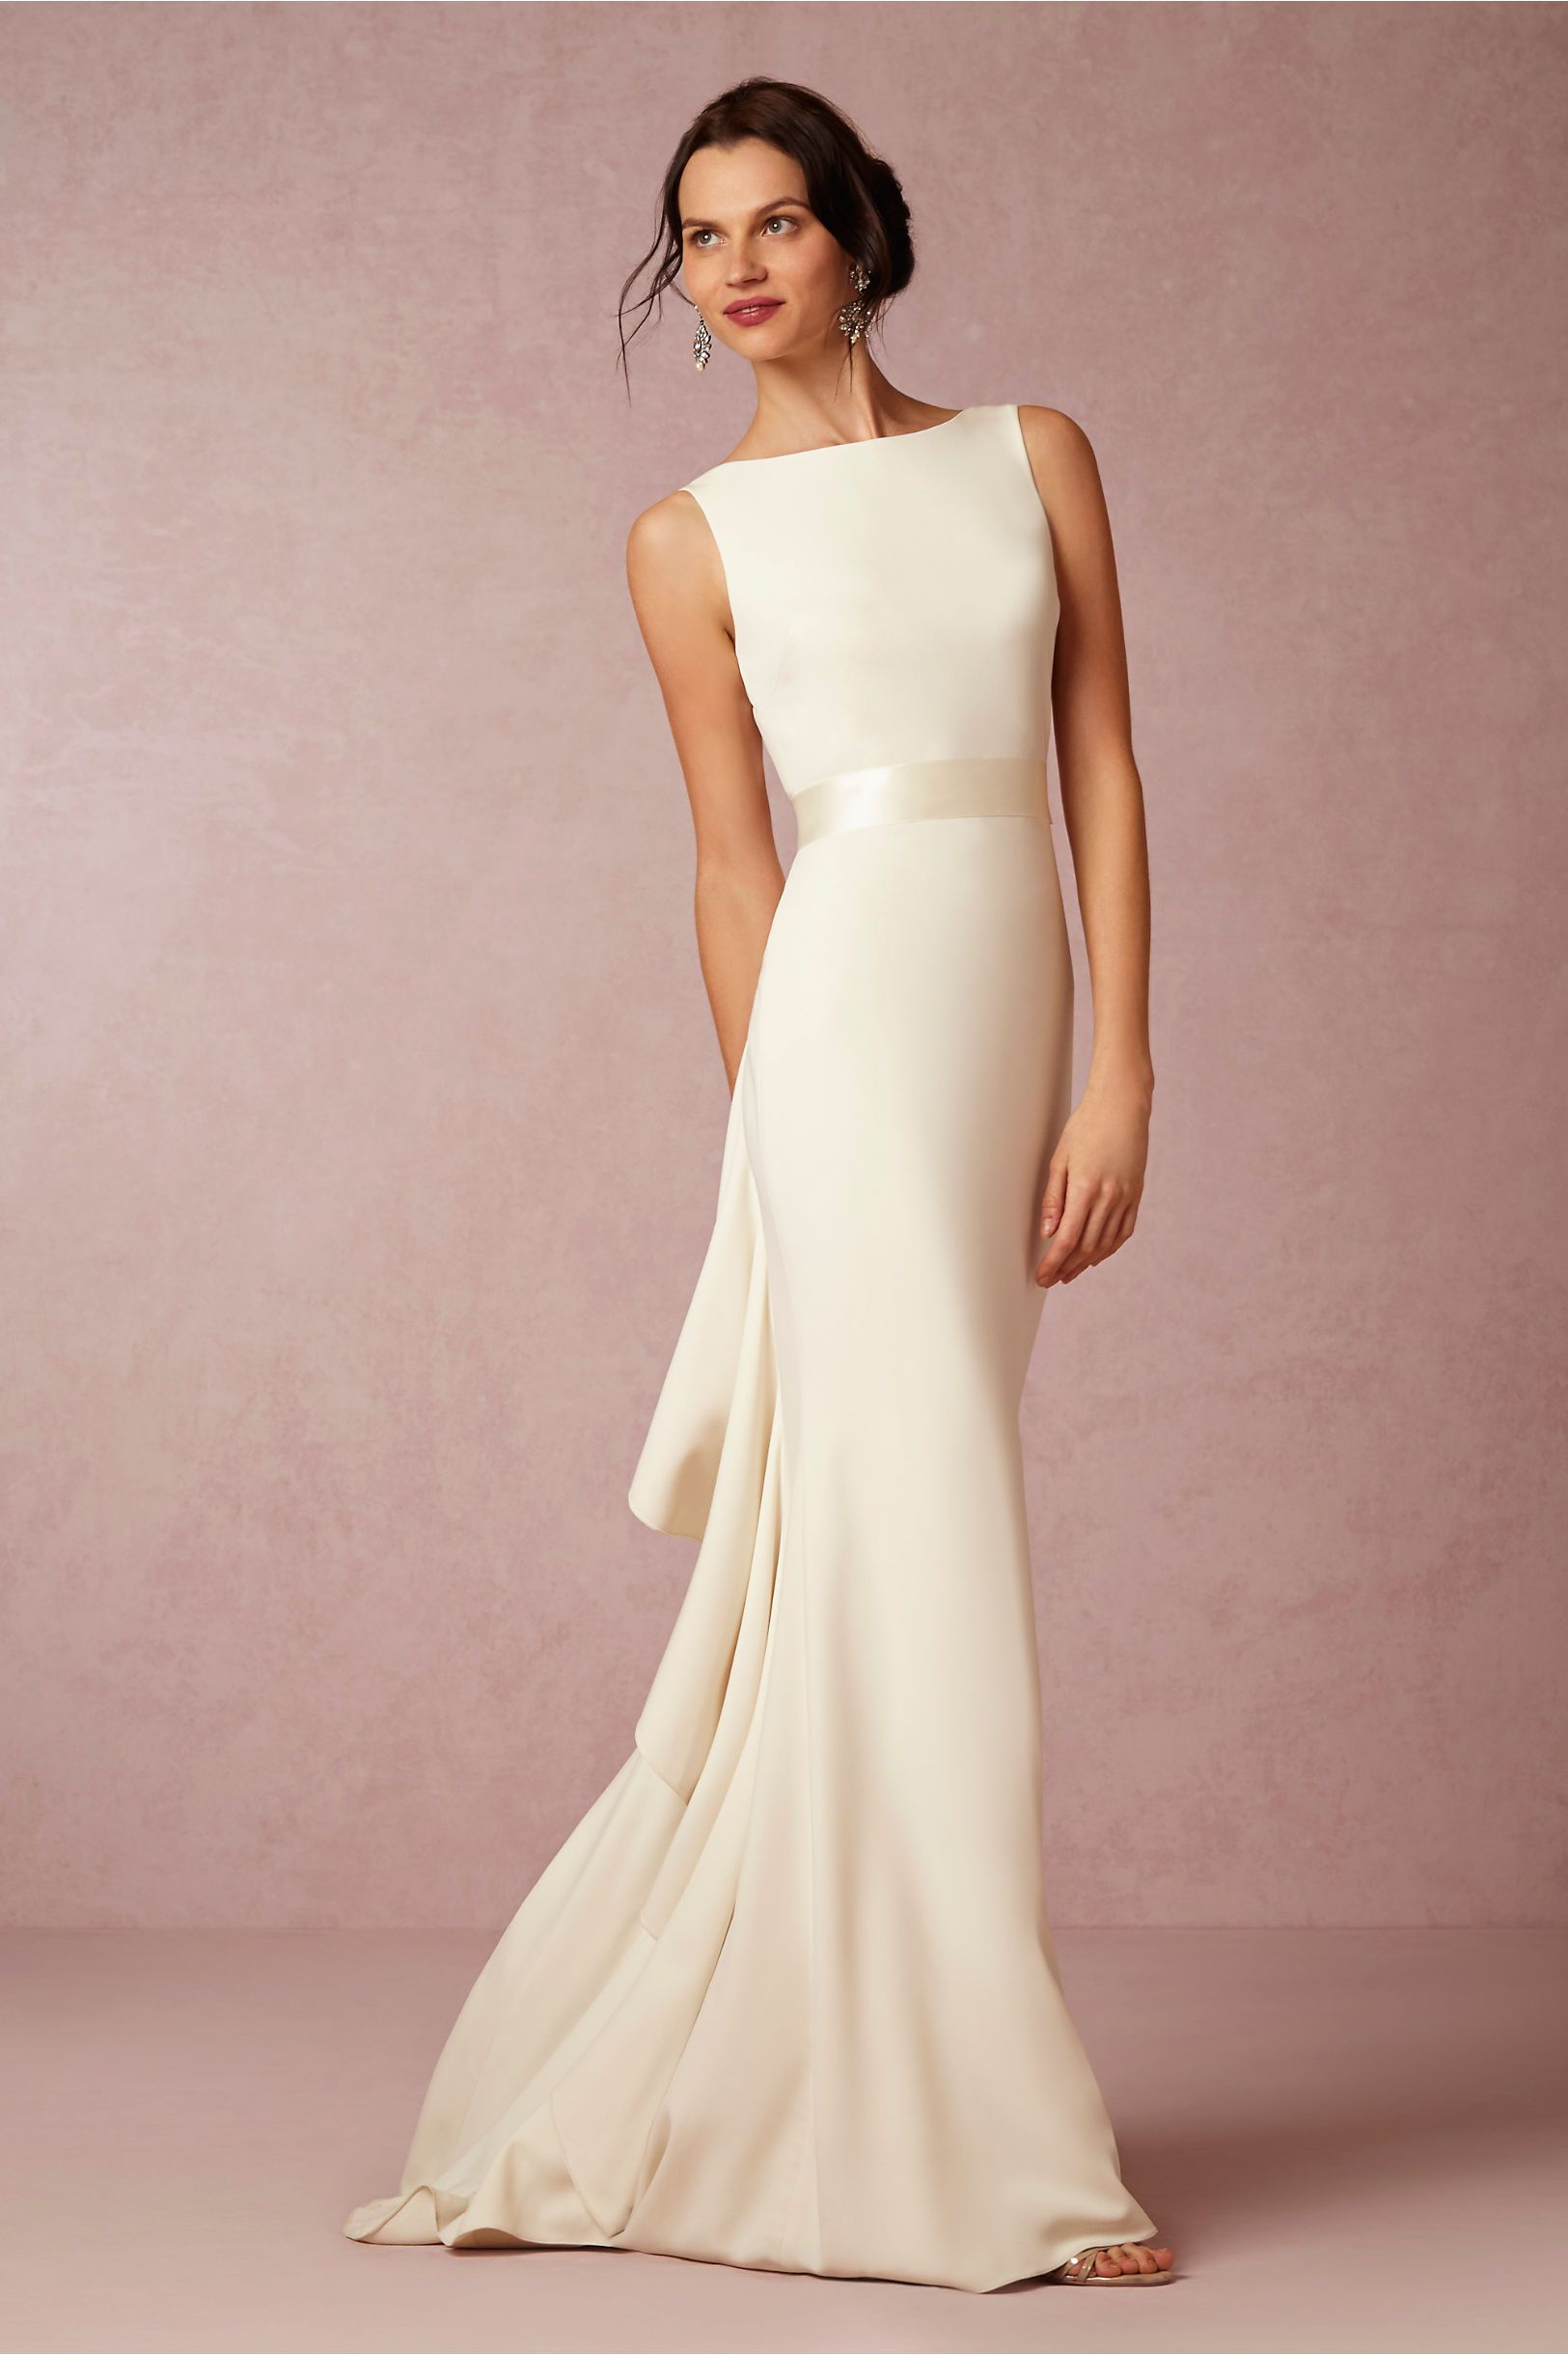 Stunning Collection of Sheath Wedding Dresses | Gowns, Reception and ...